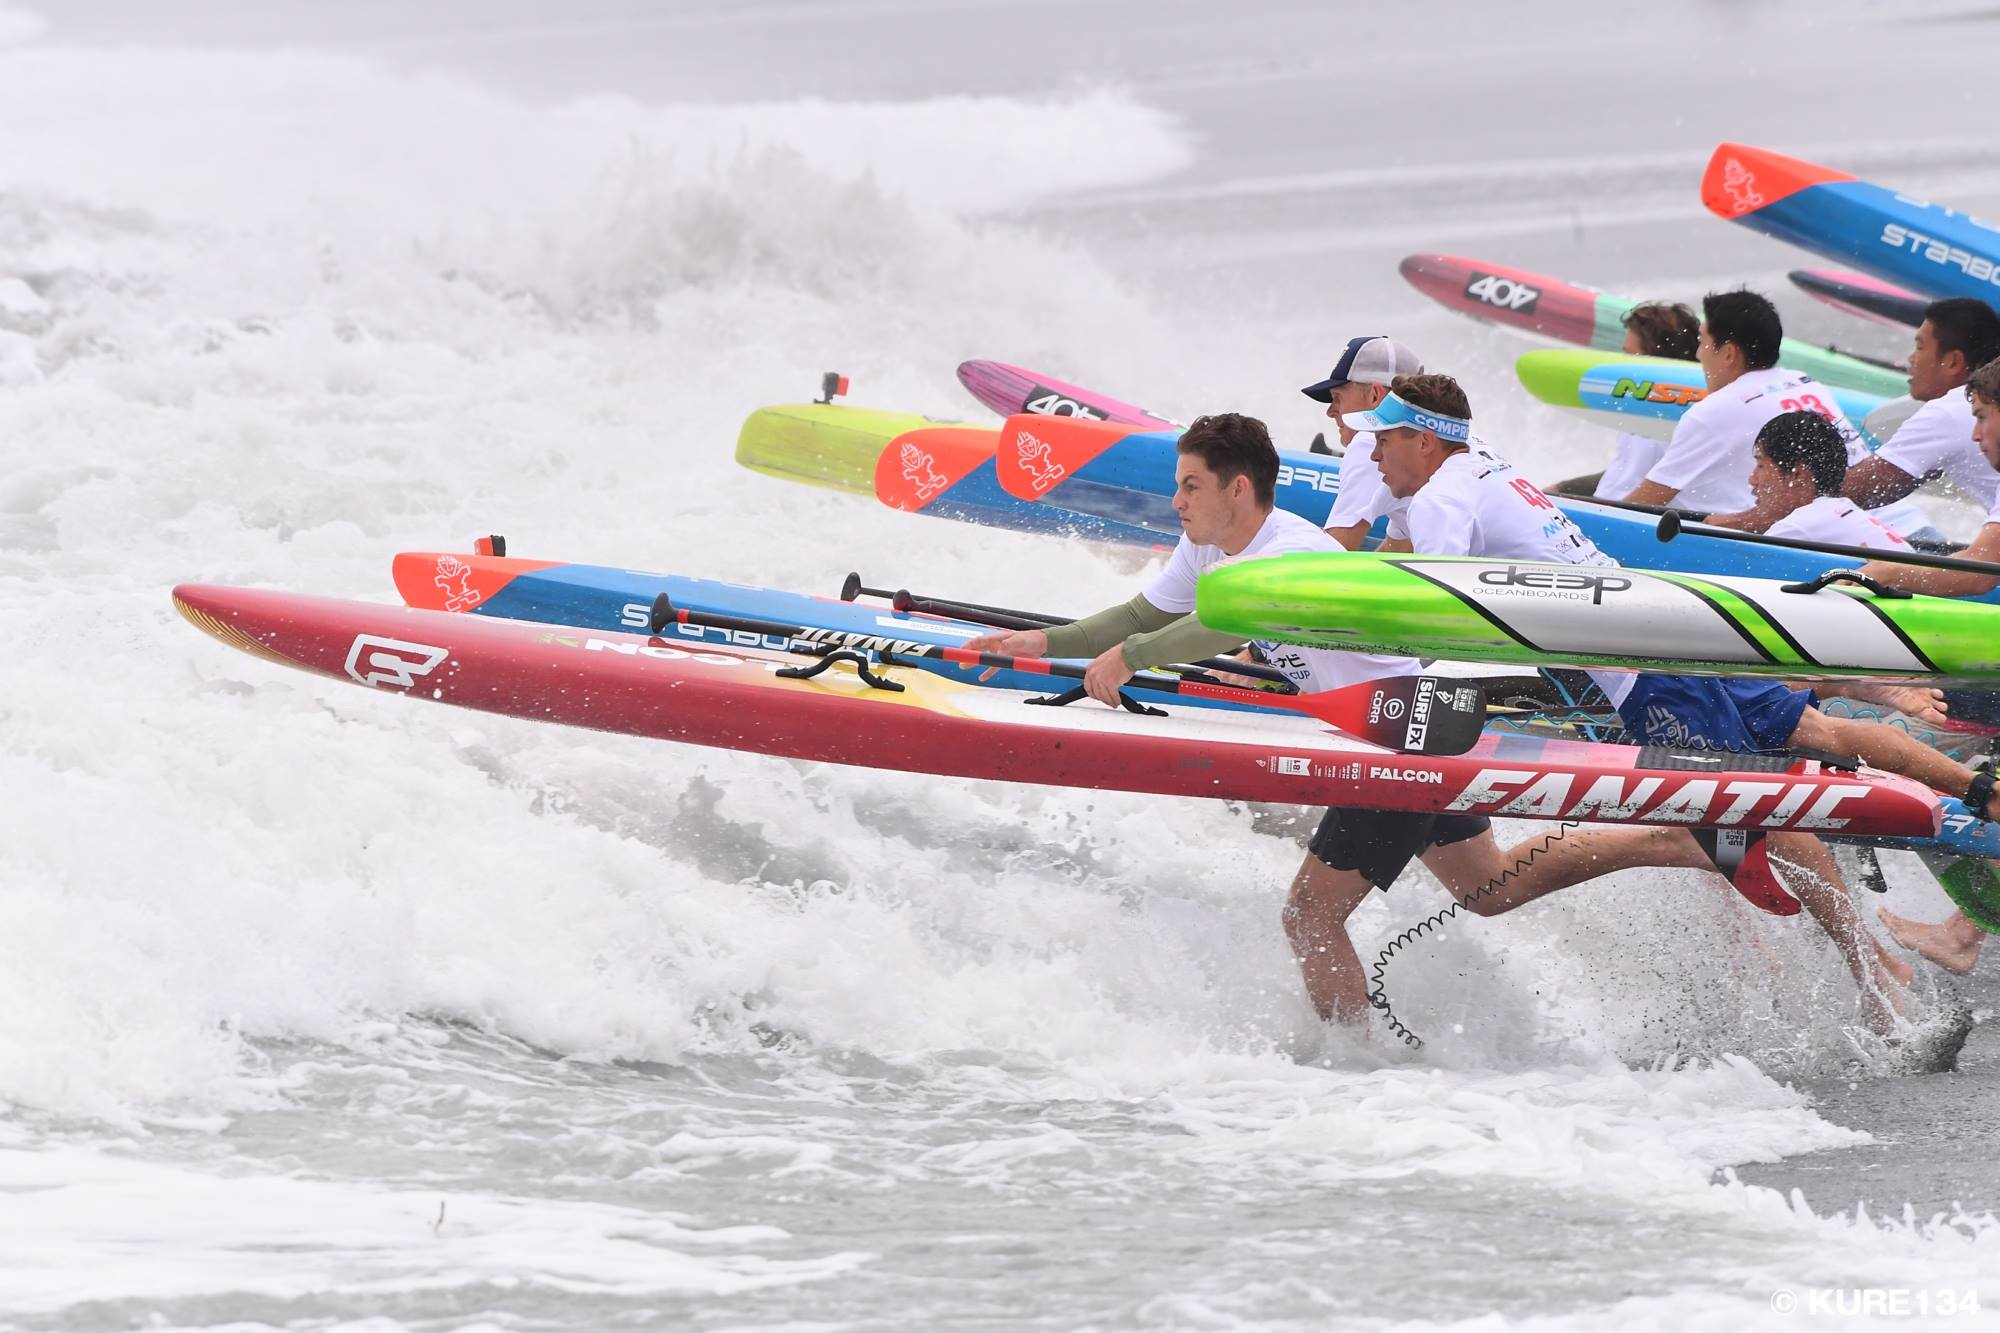 The-Paddle-League-SUP-Japan-Cup-Sunday-Survivor-Race-@kure134-15